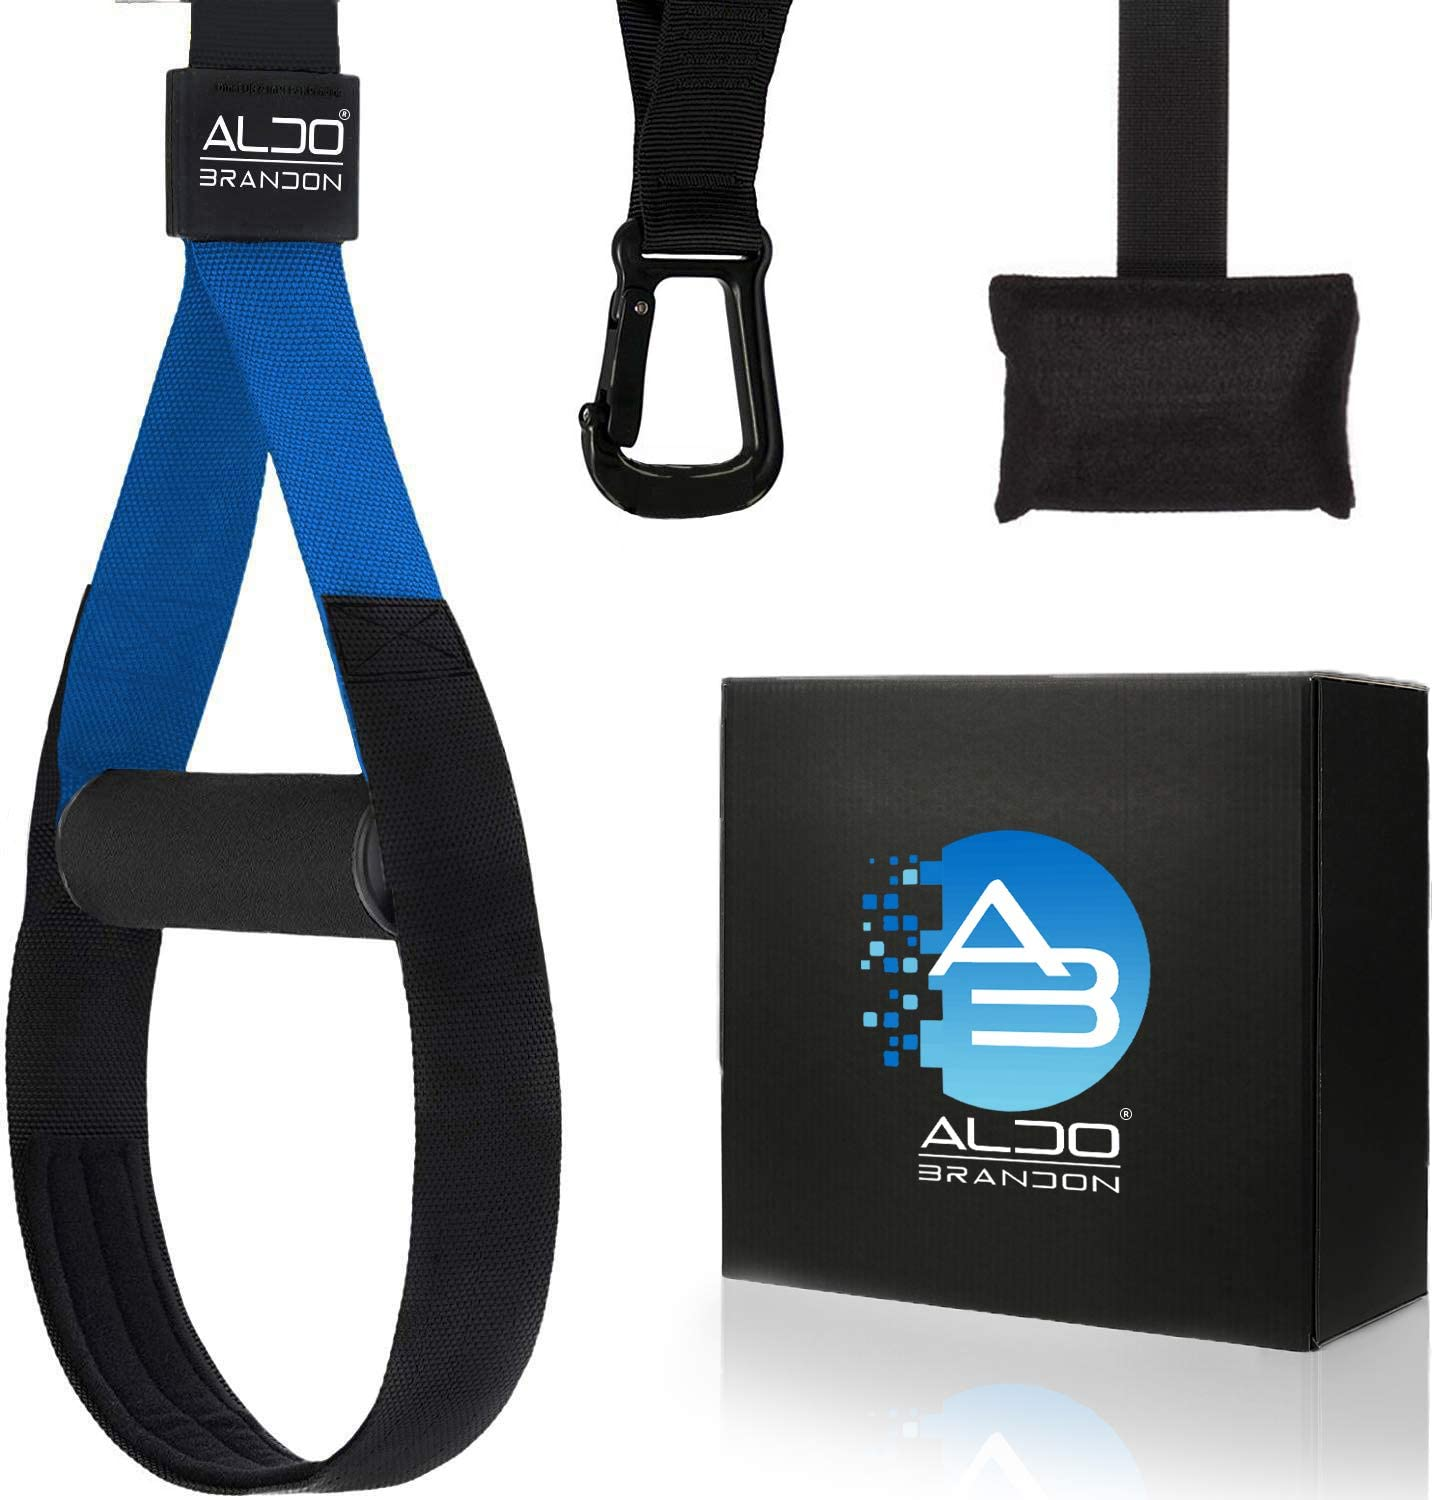 Aldobrandon Suspension Trainer: Home Kit & Workout Straps. Full Body Gym All Levels & Goals. Replace Training like Gym Weights, Training Bands & Gym